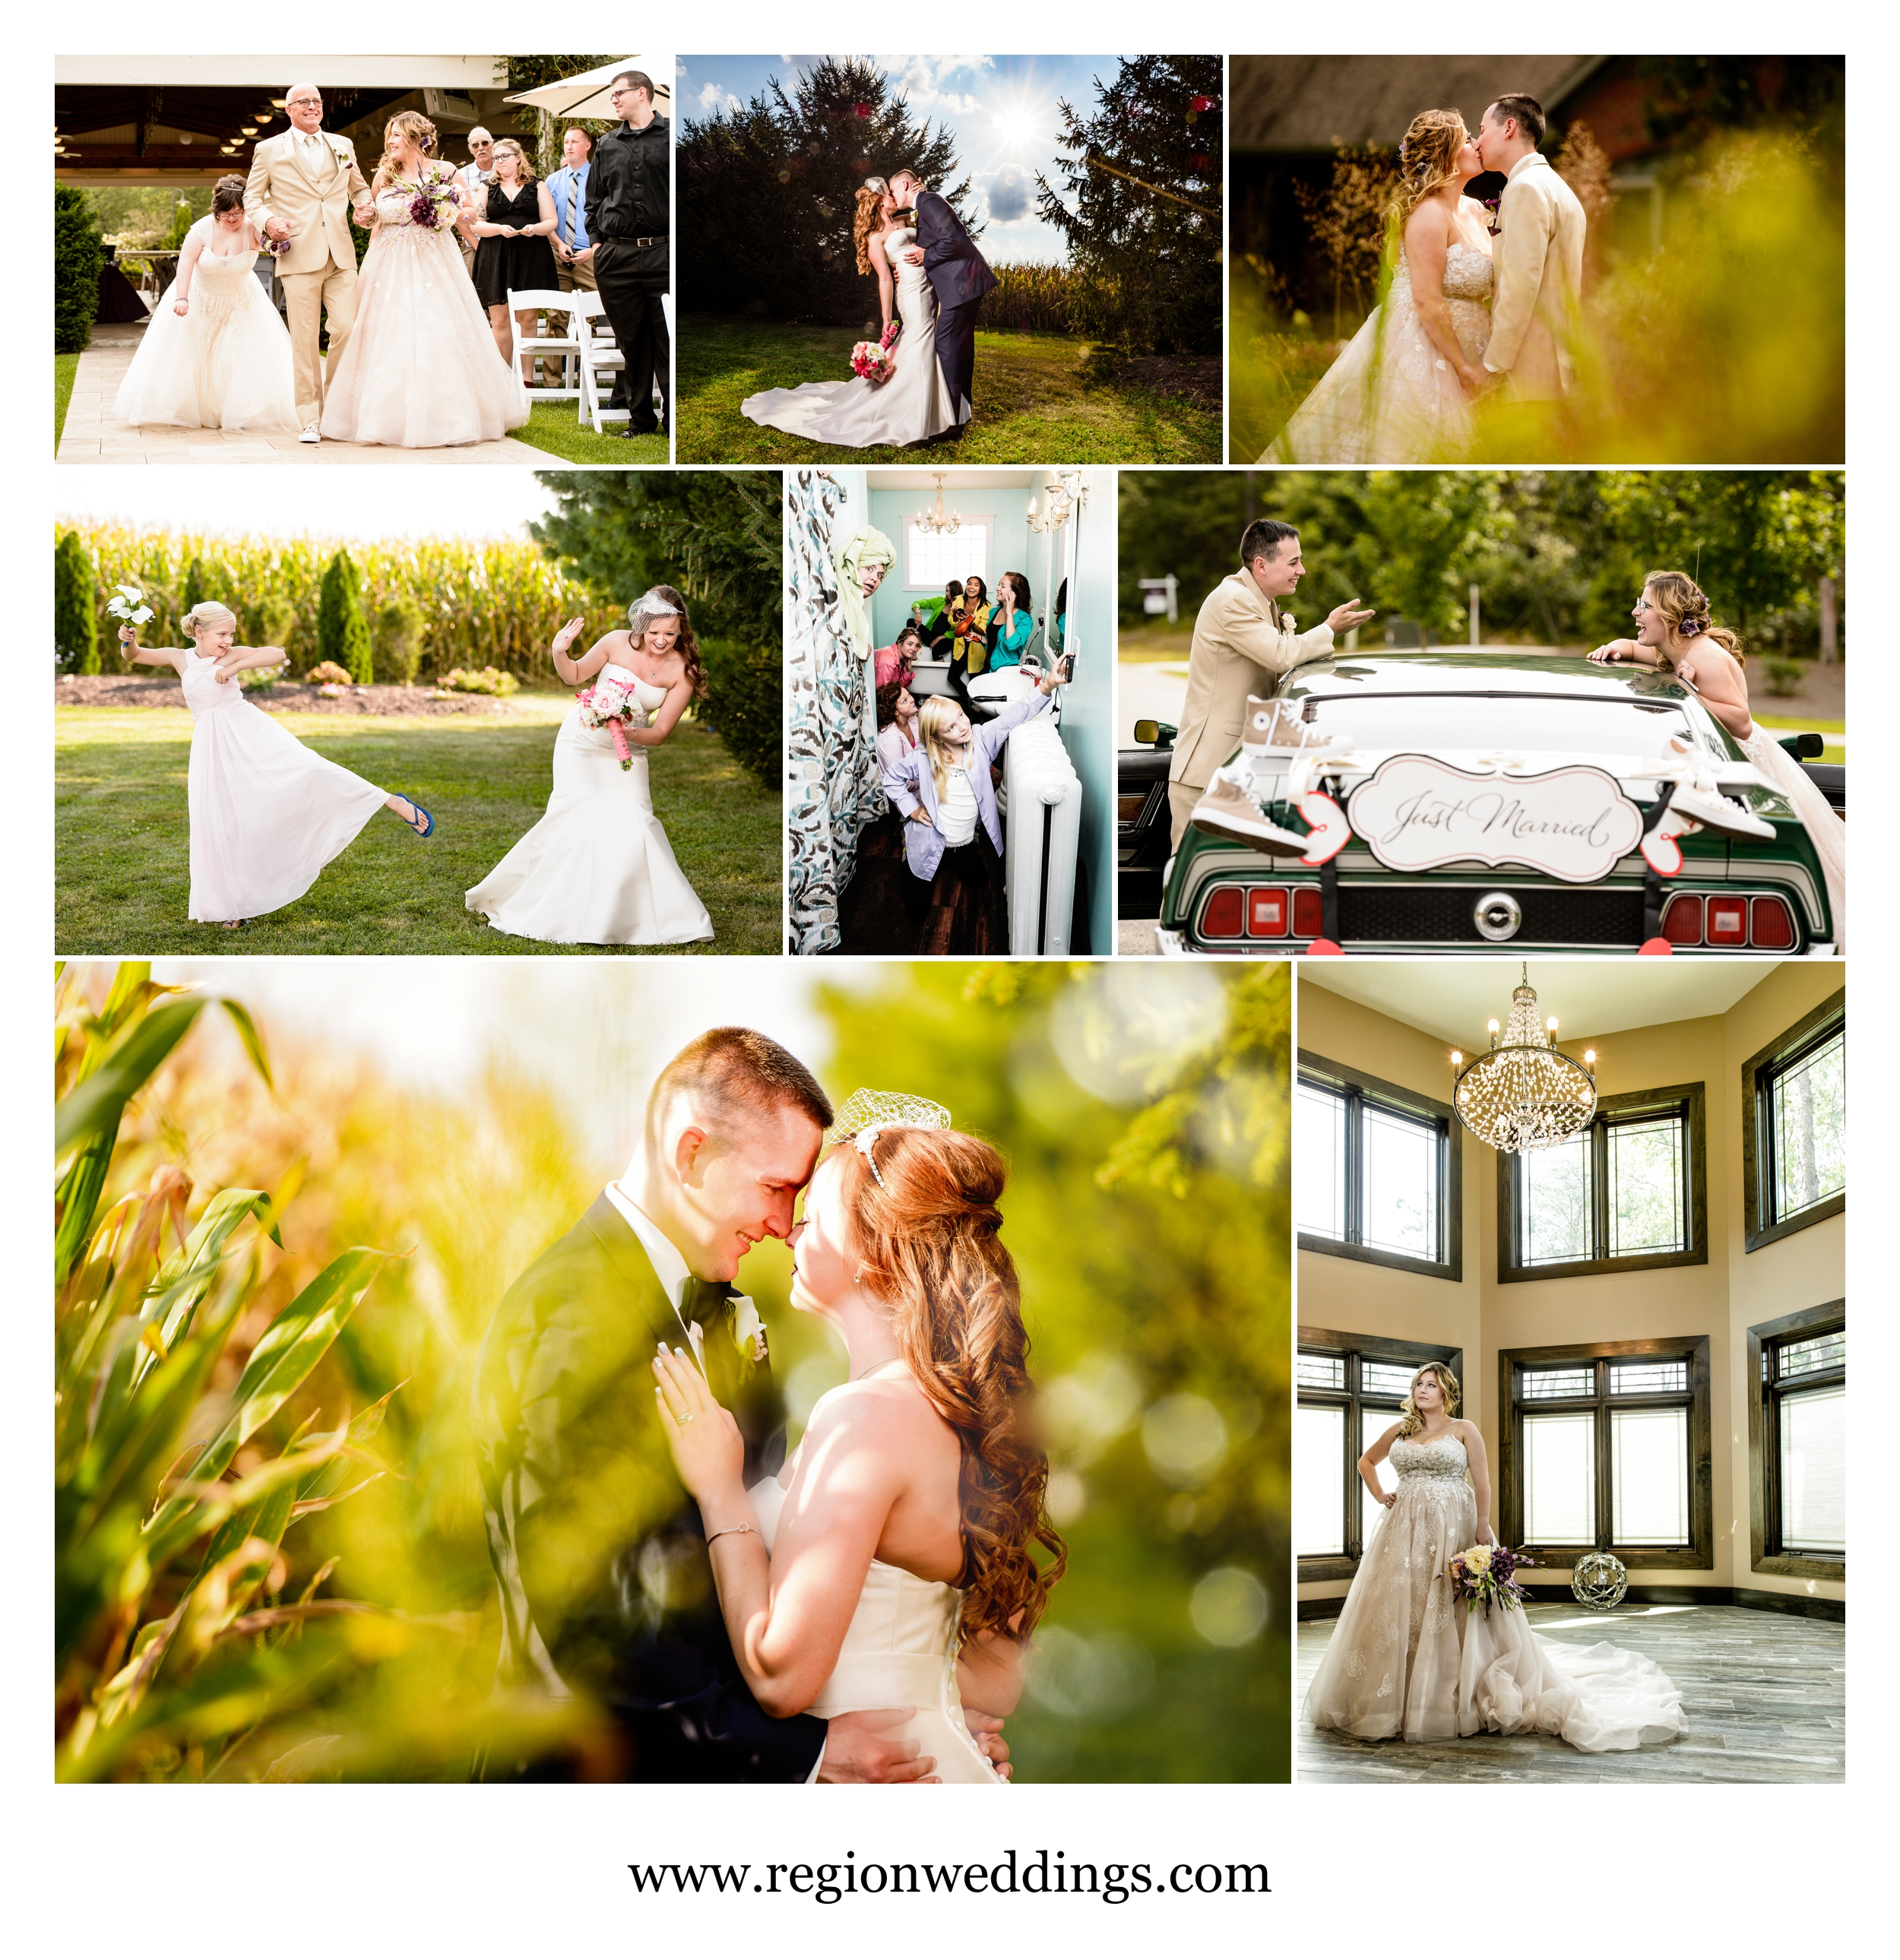 Late summer weddings at Meadow Springs Manor and Sandy Pines.